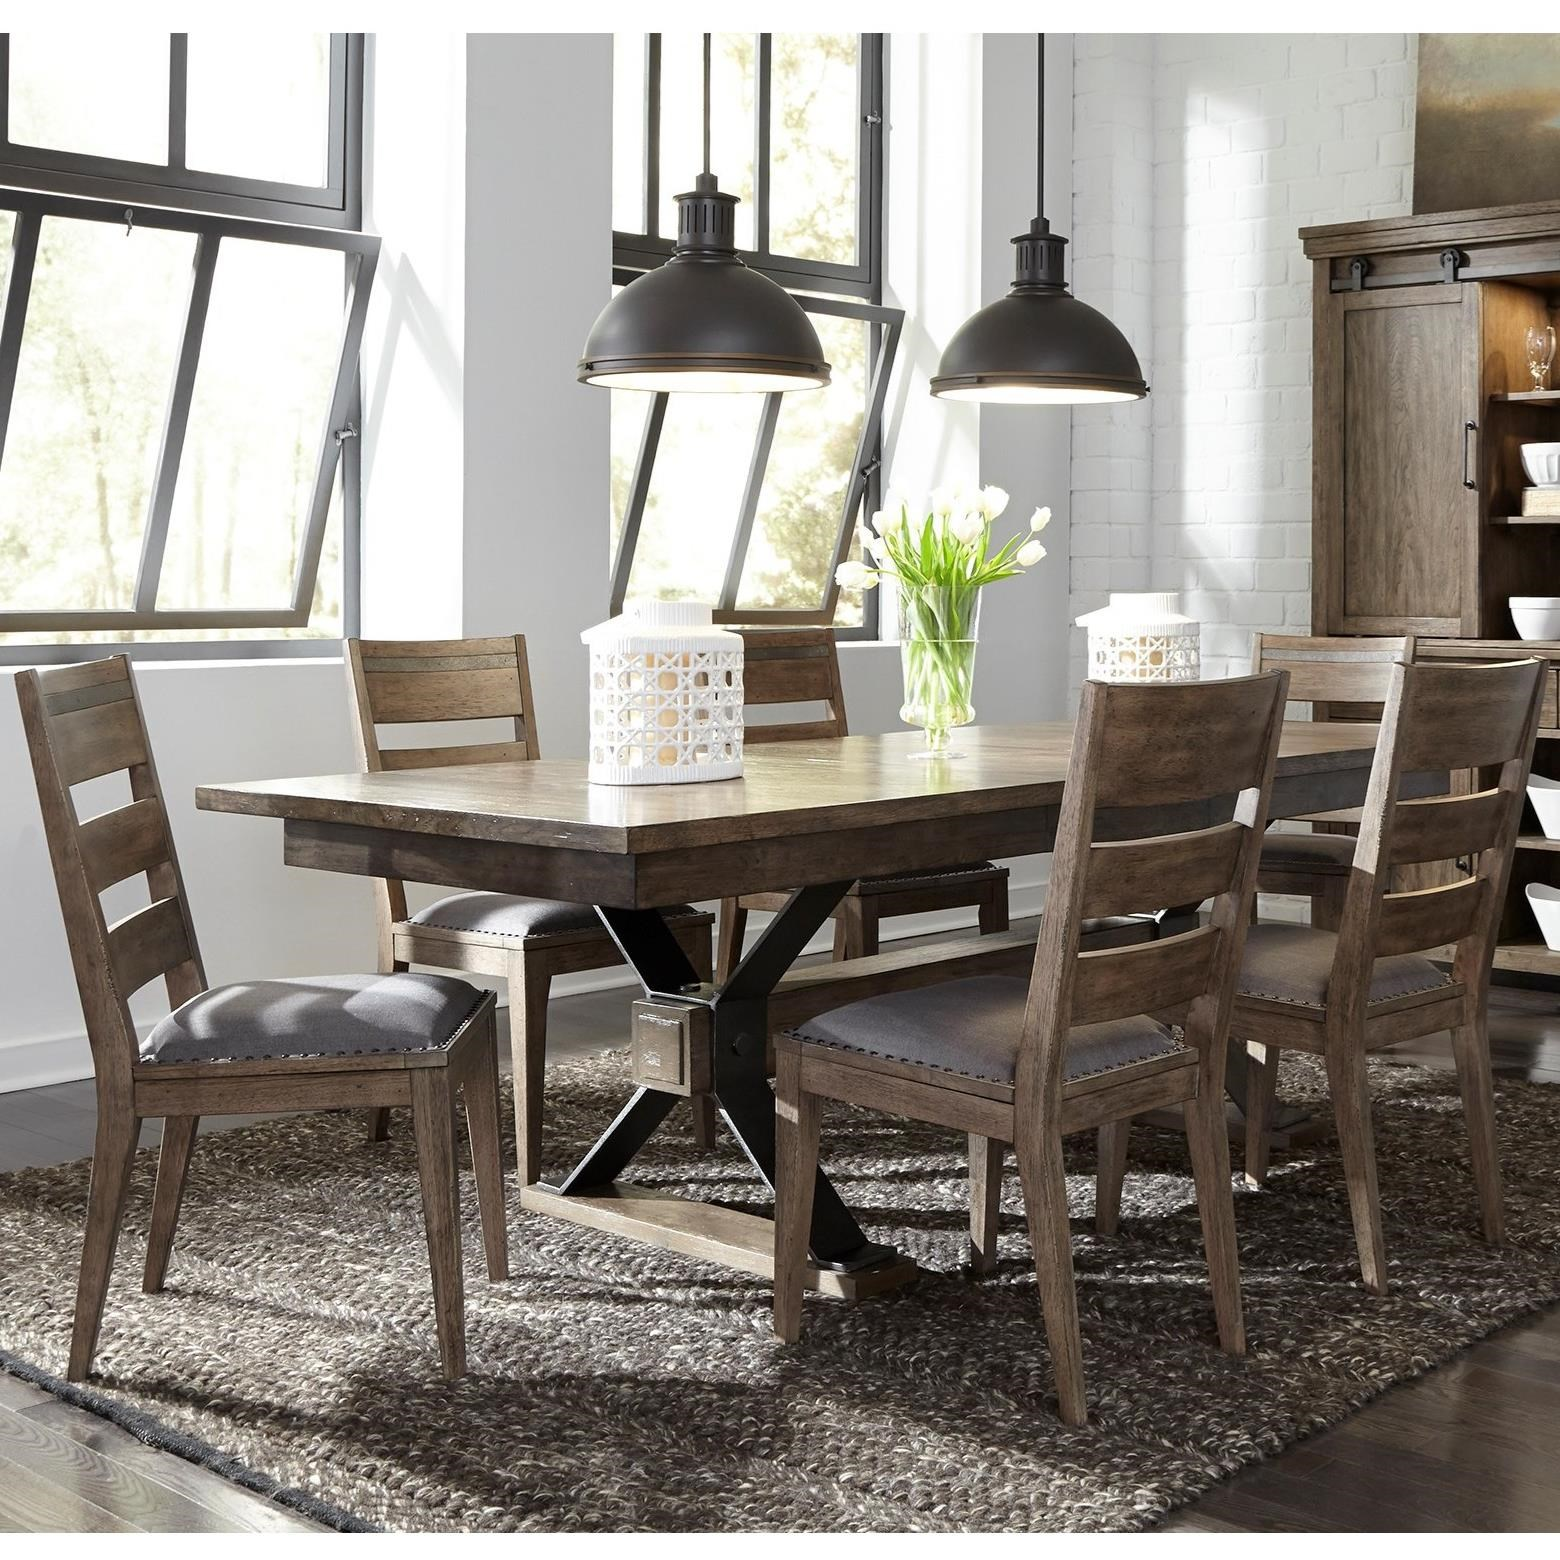 Sonoma Road 7 Piece Table and Chair Set  by Libby at Walker's Furniture